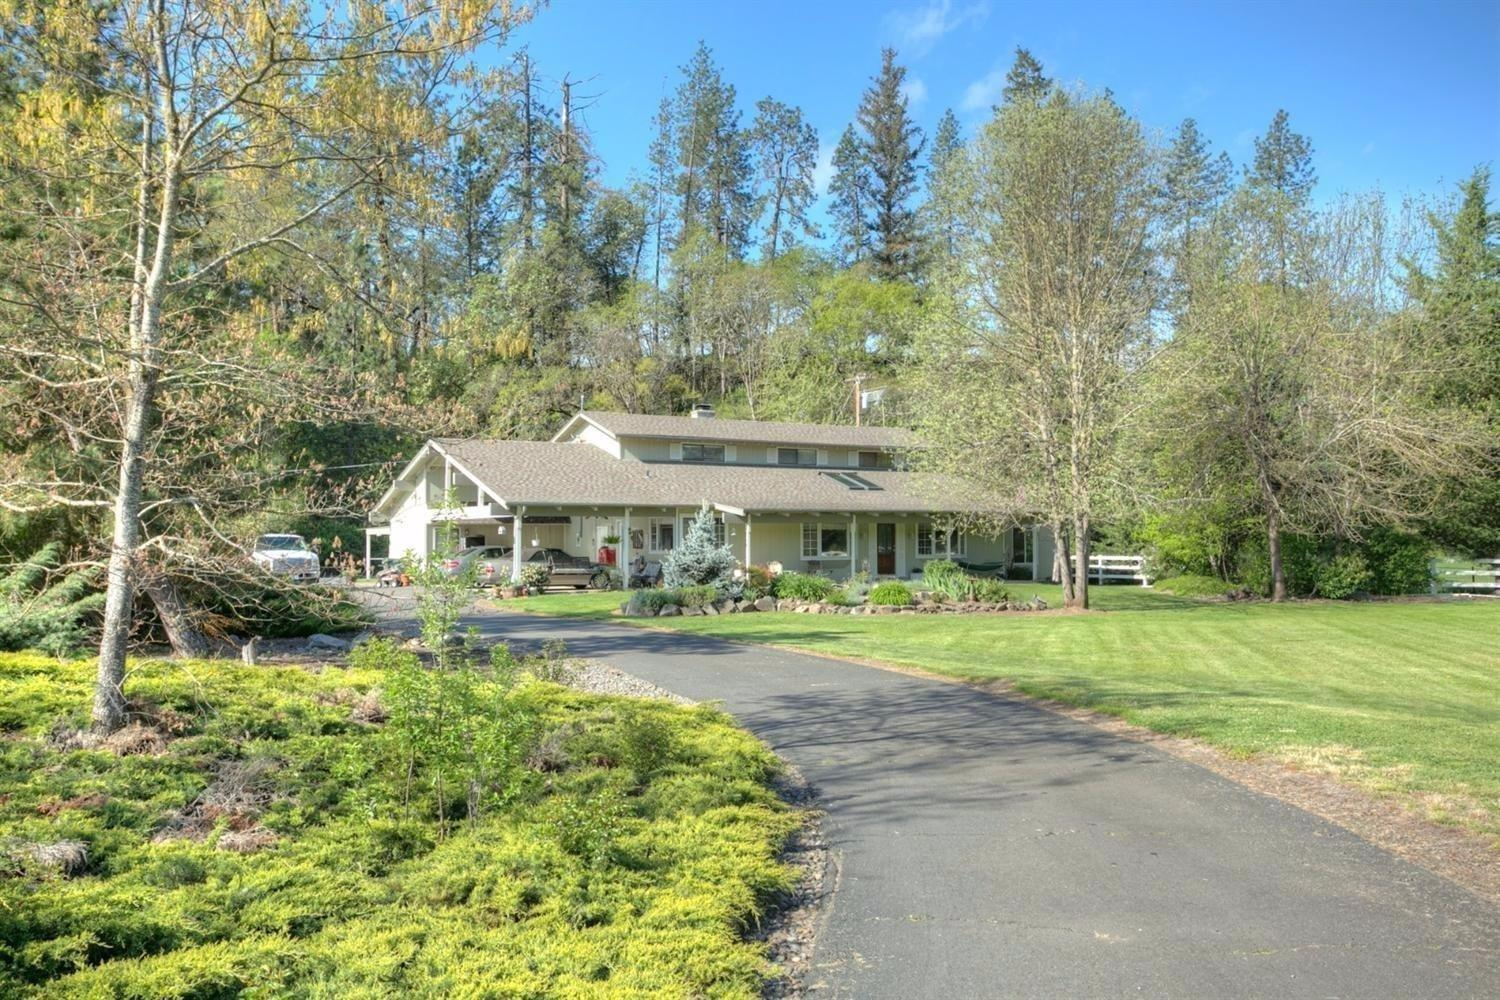 11110 Hwy 140, Eagle Point, OR | MLS# 2989128 | Buy Southern